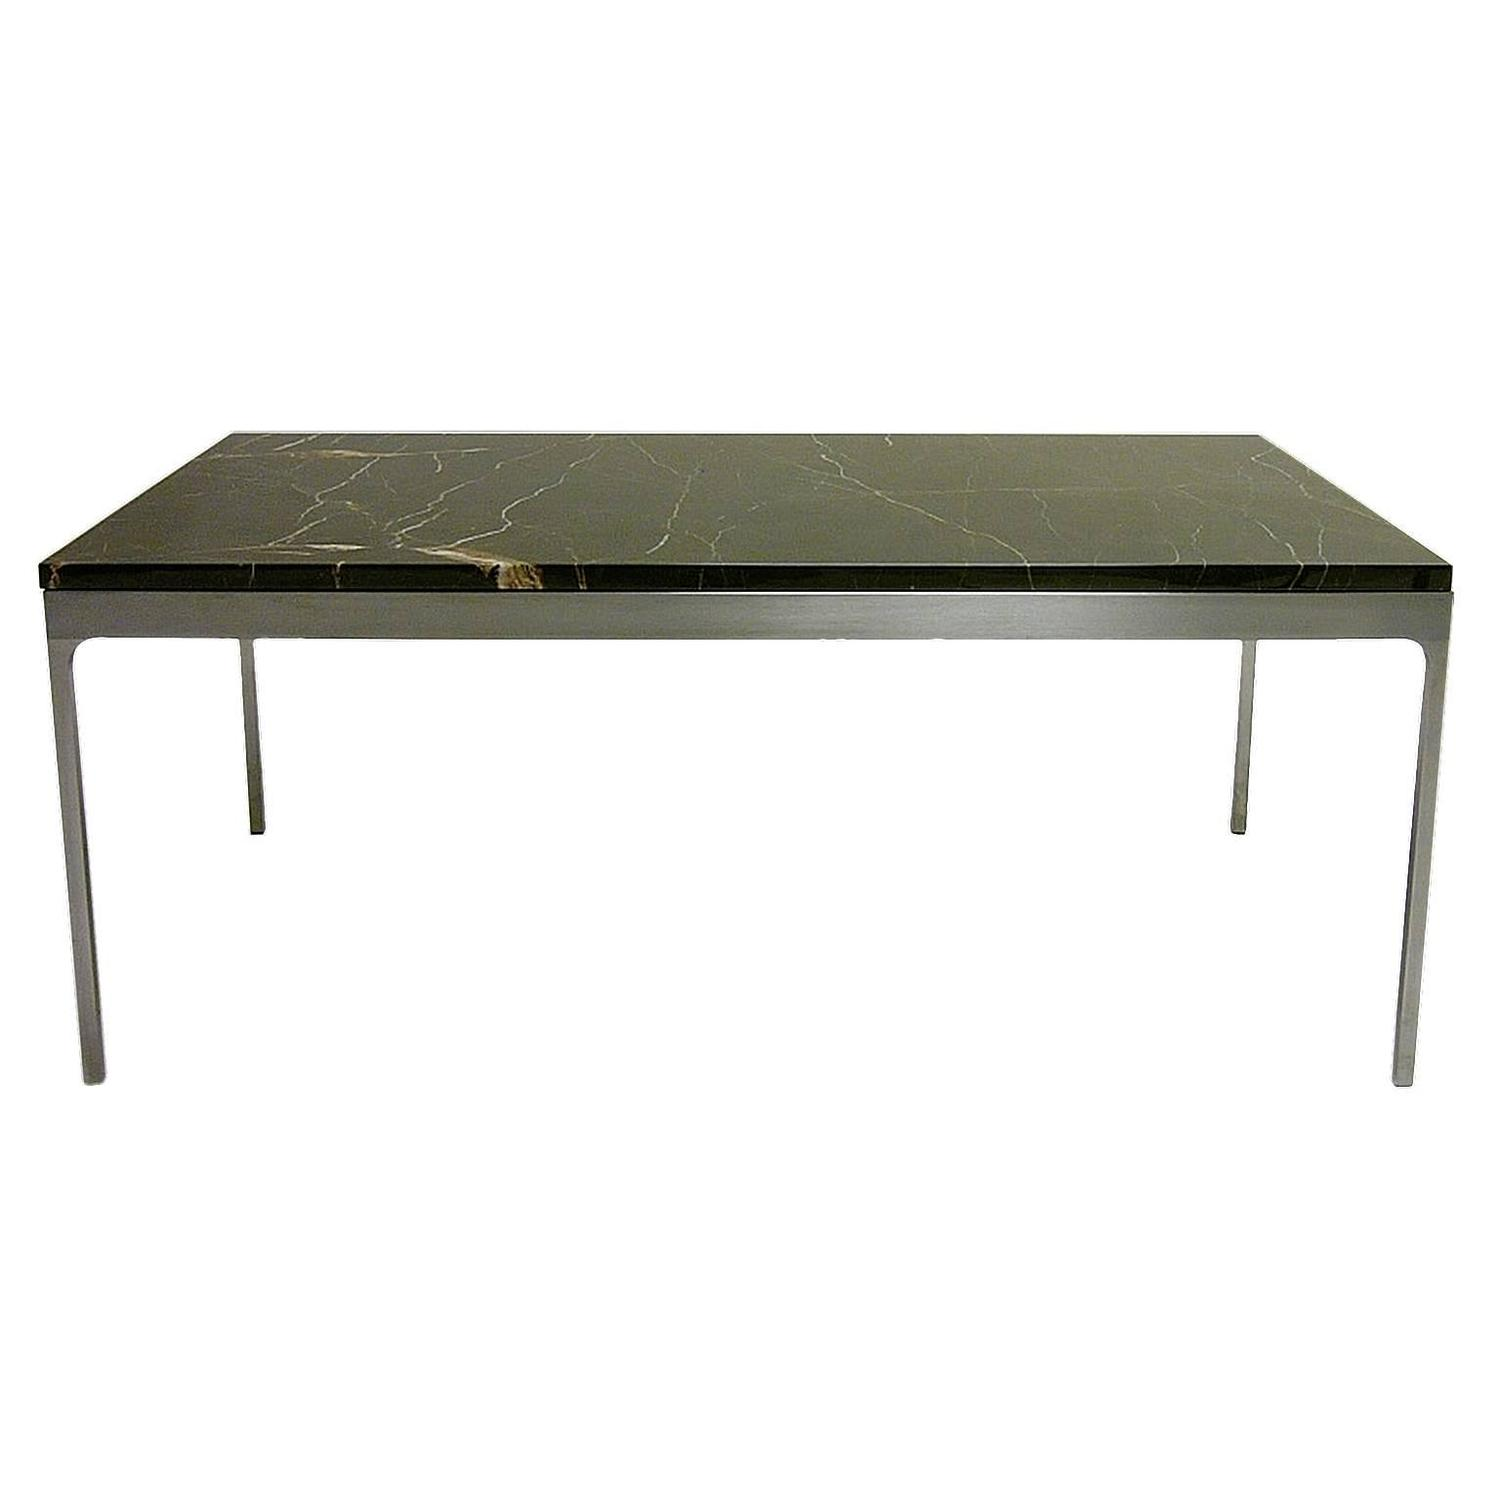 Arcade Coffee Table Aged Brass Structure and Marble Top Nero